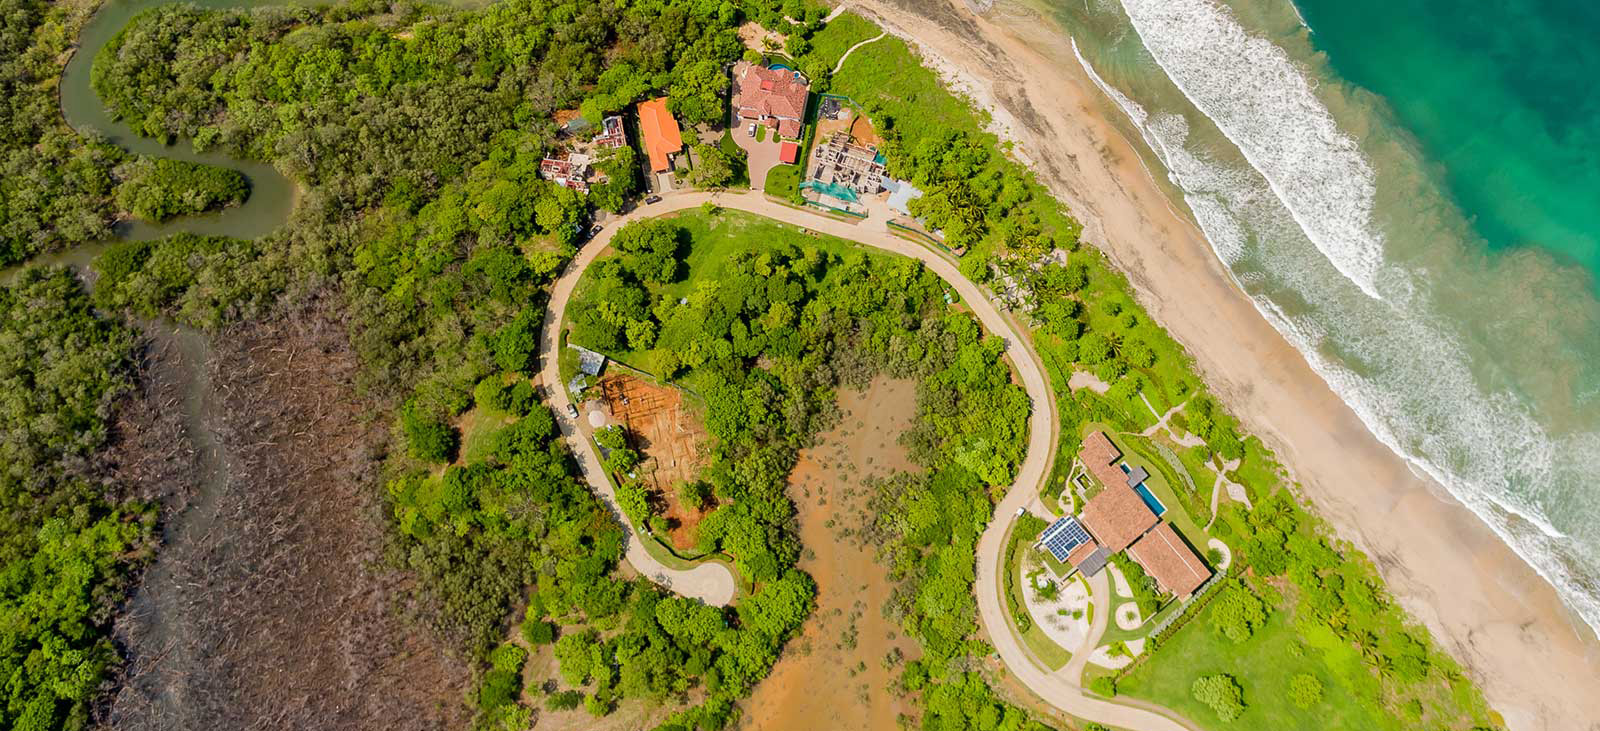 New Hotel Opens in Guanacaste